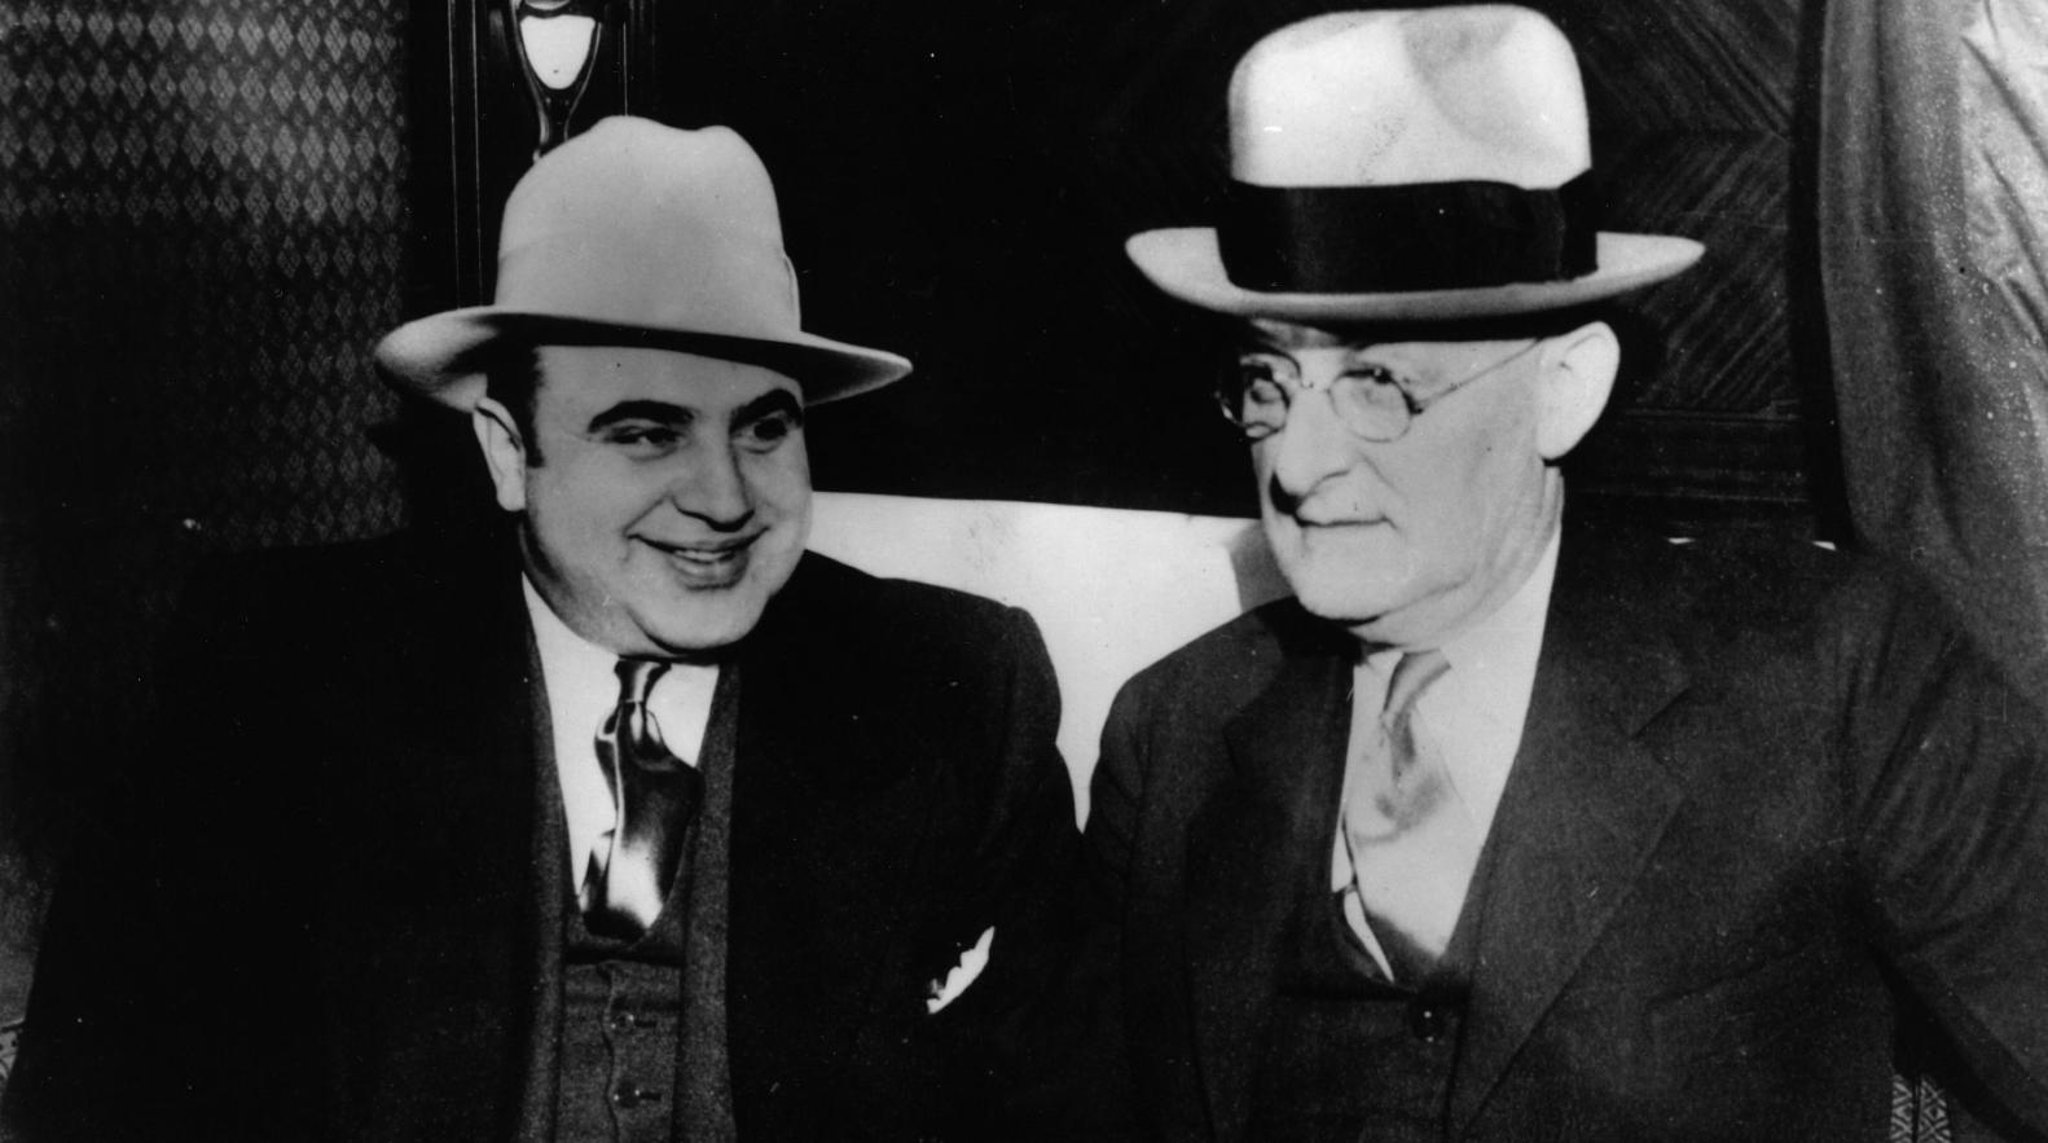 This is what happened during the St Valentine's Day Massacre ordered by Al Capone